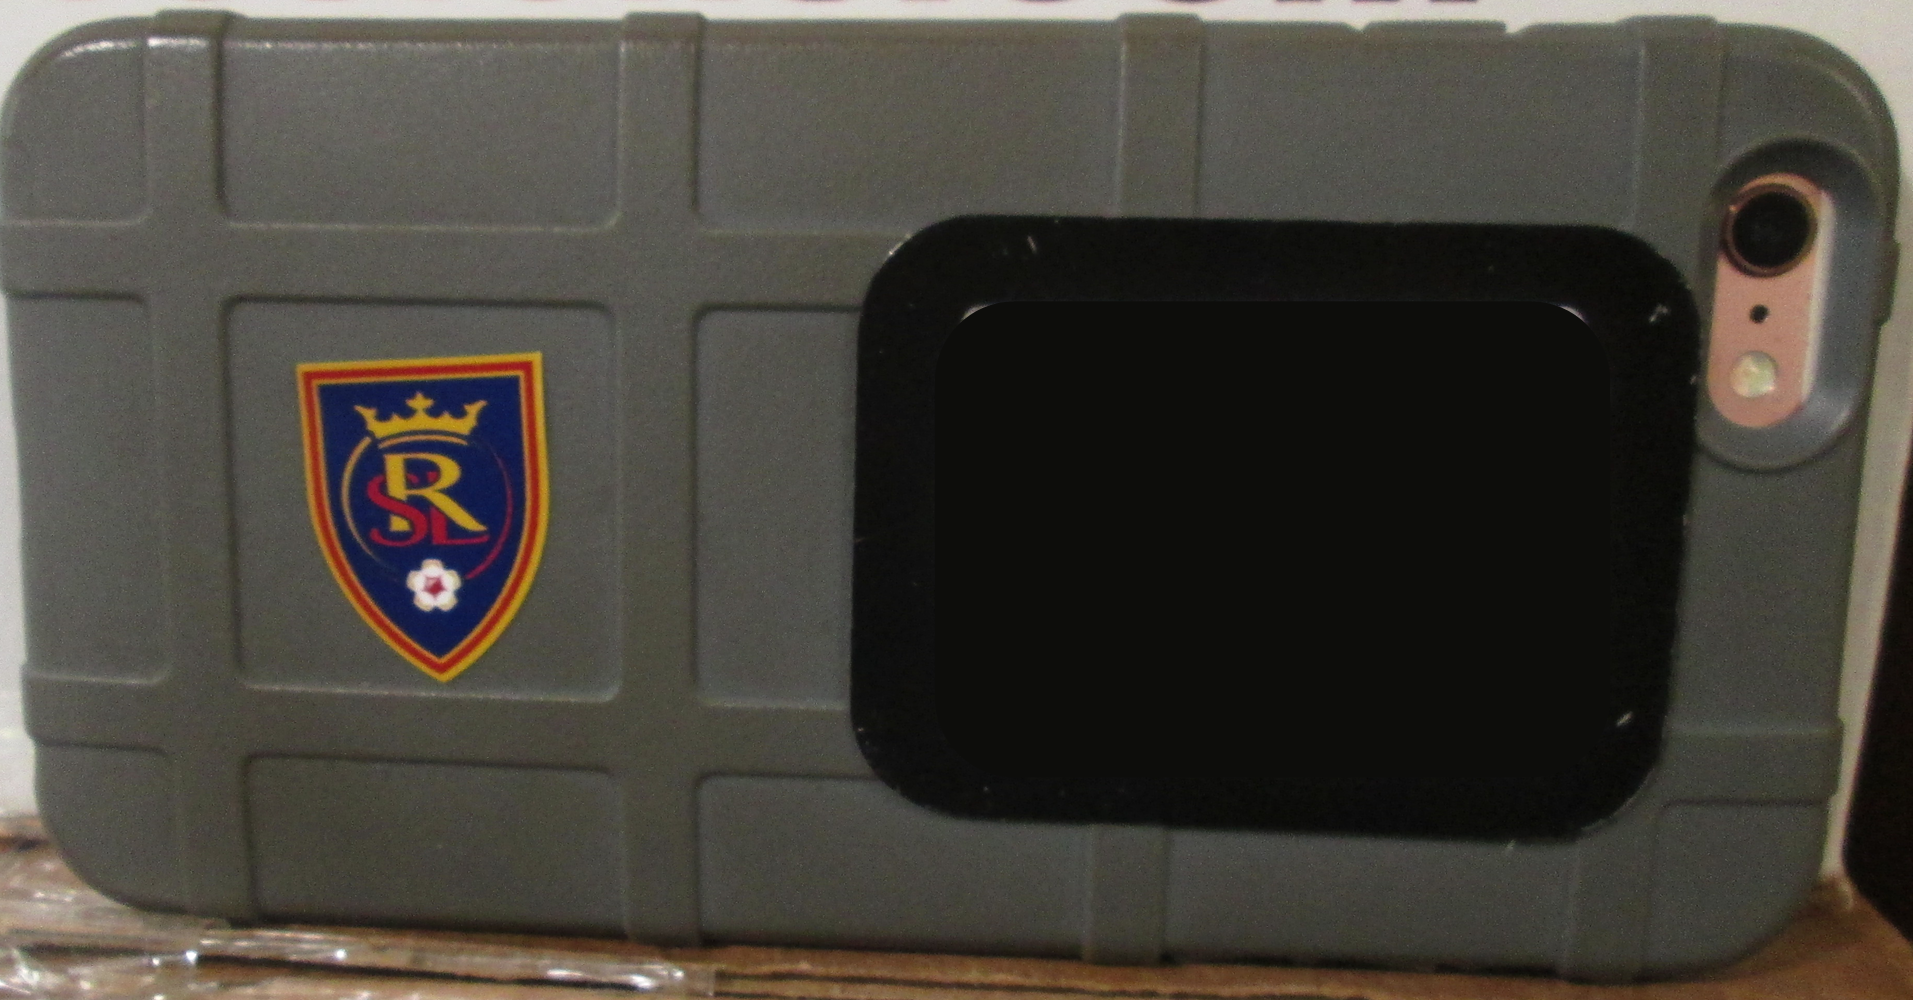 Real Salt Lake FC Shield small sticker on a phone case